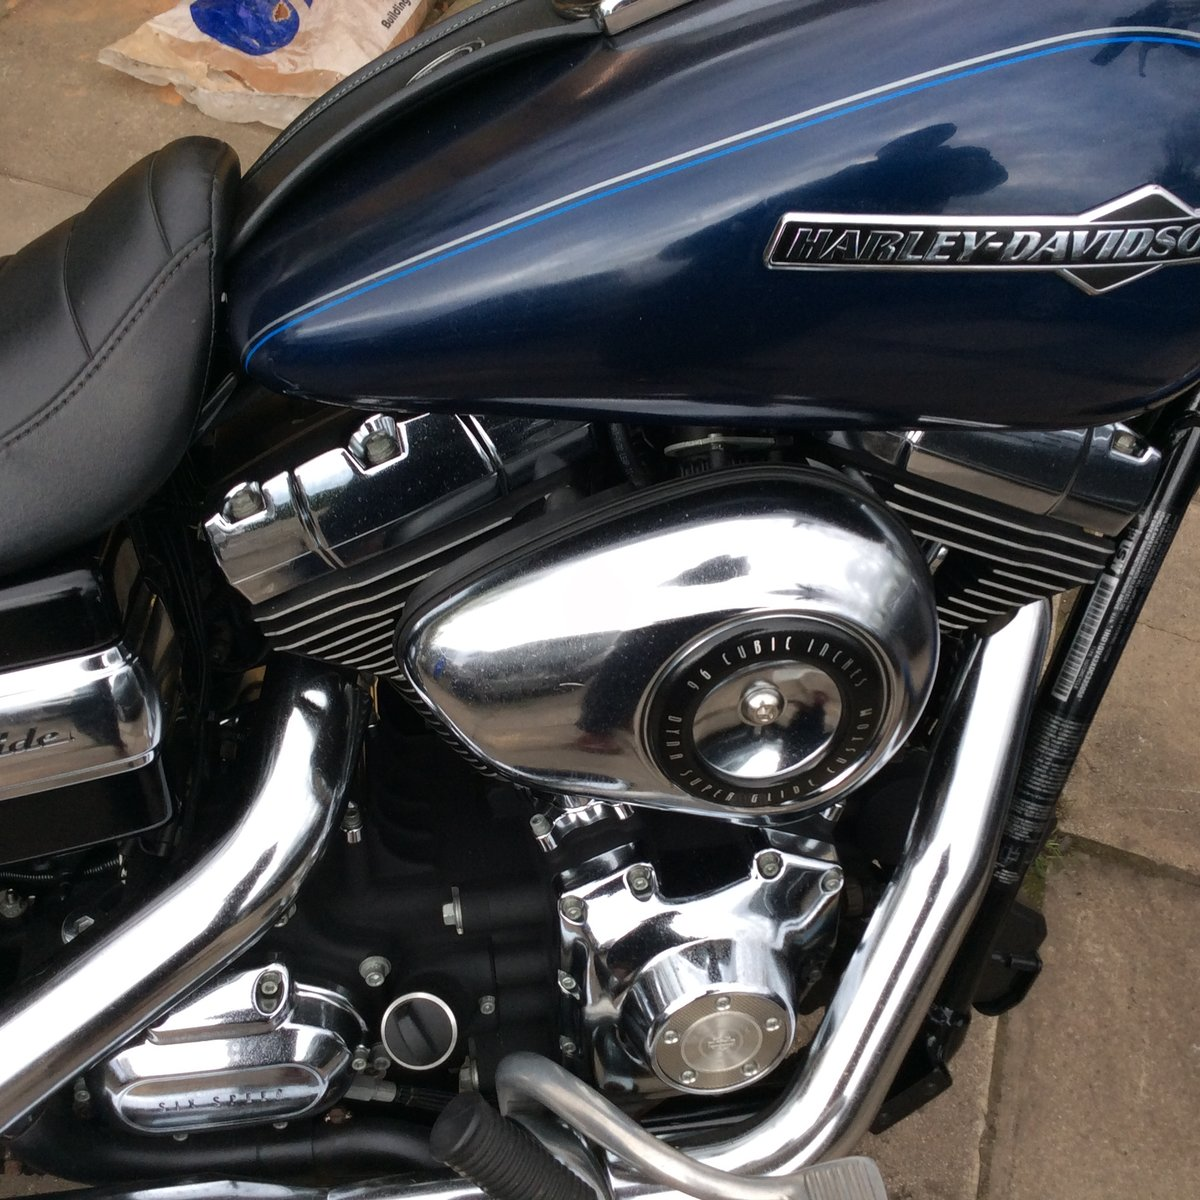 2013 Harley davidson dyna superglide For Sale (picture 5 of 6)